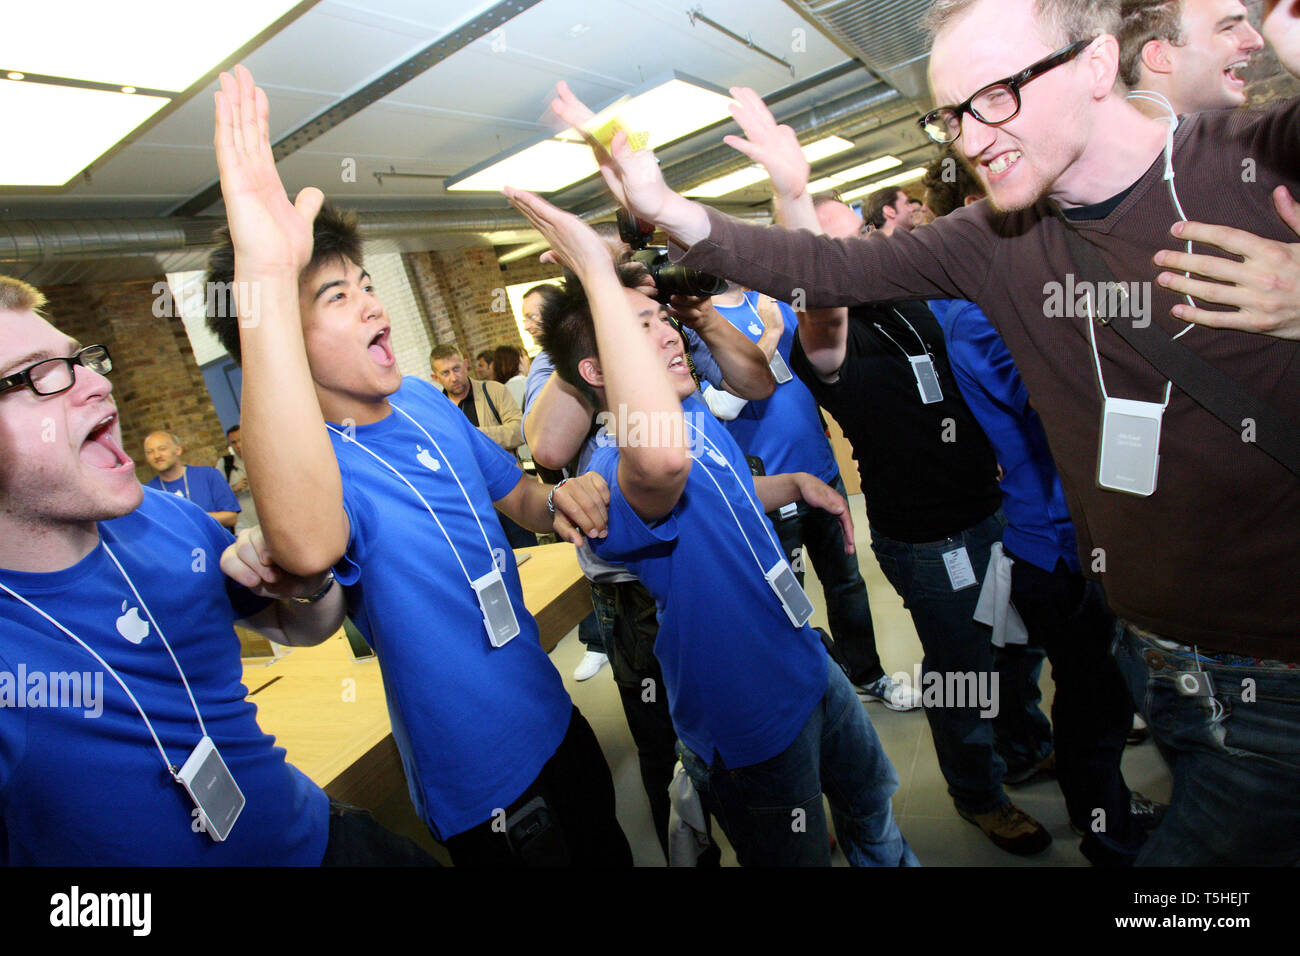 Apple opens a new store in Covent Garden, London. 7 August 2010. - Stock Image